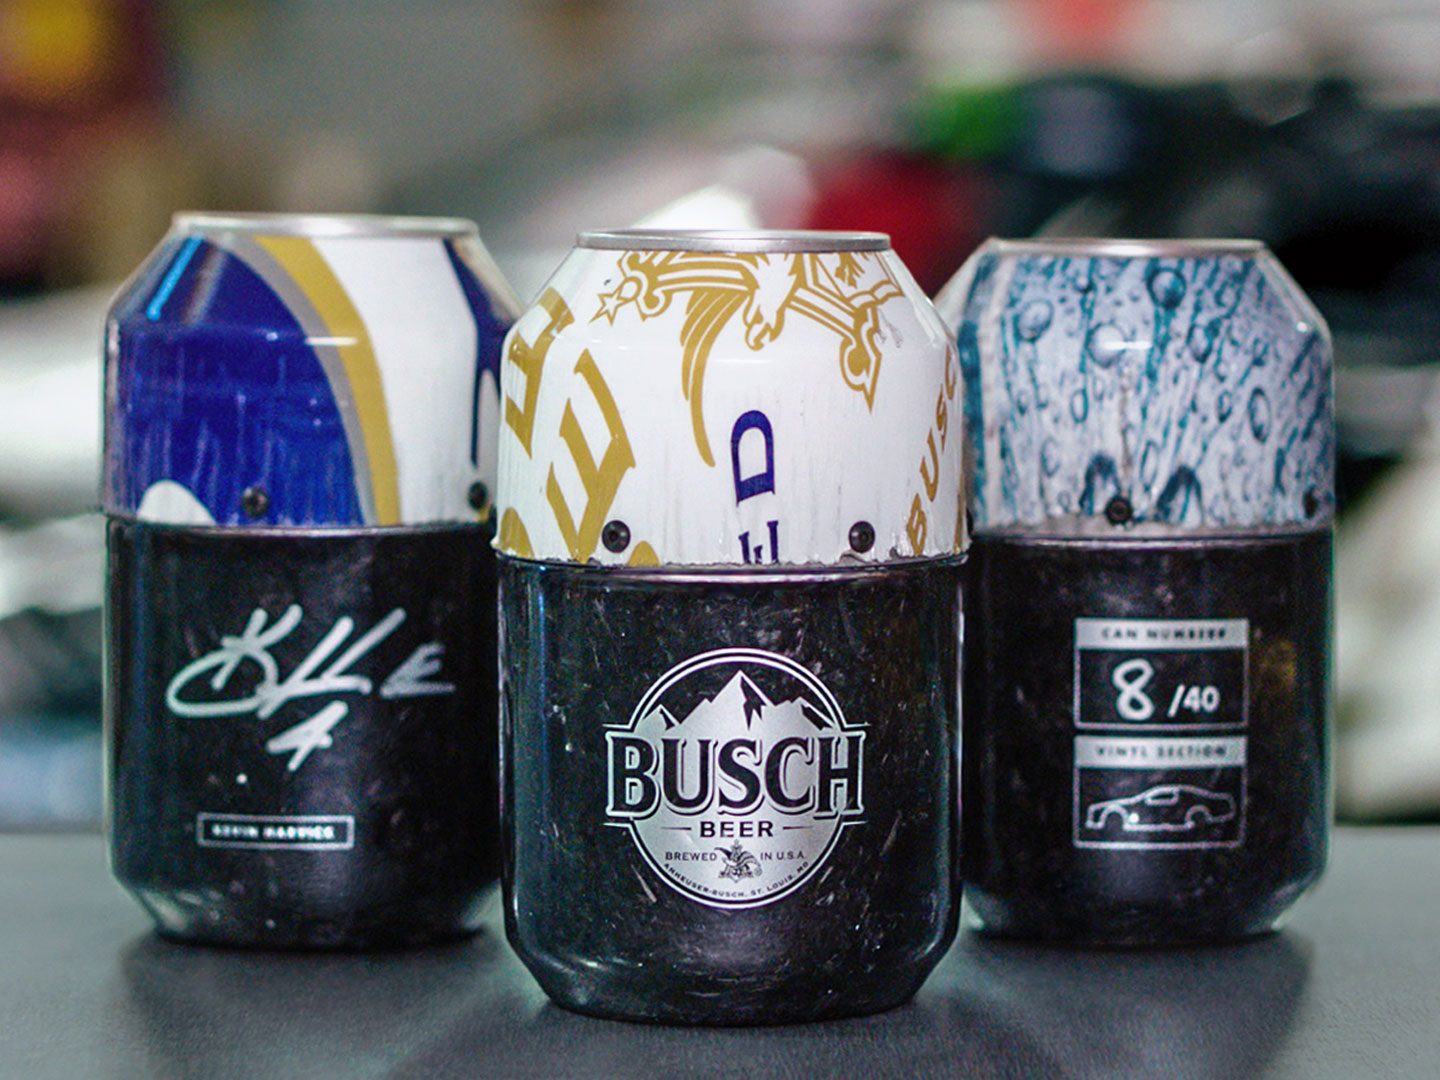 Busch Turned a Racecar into Beer Cans